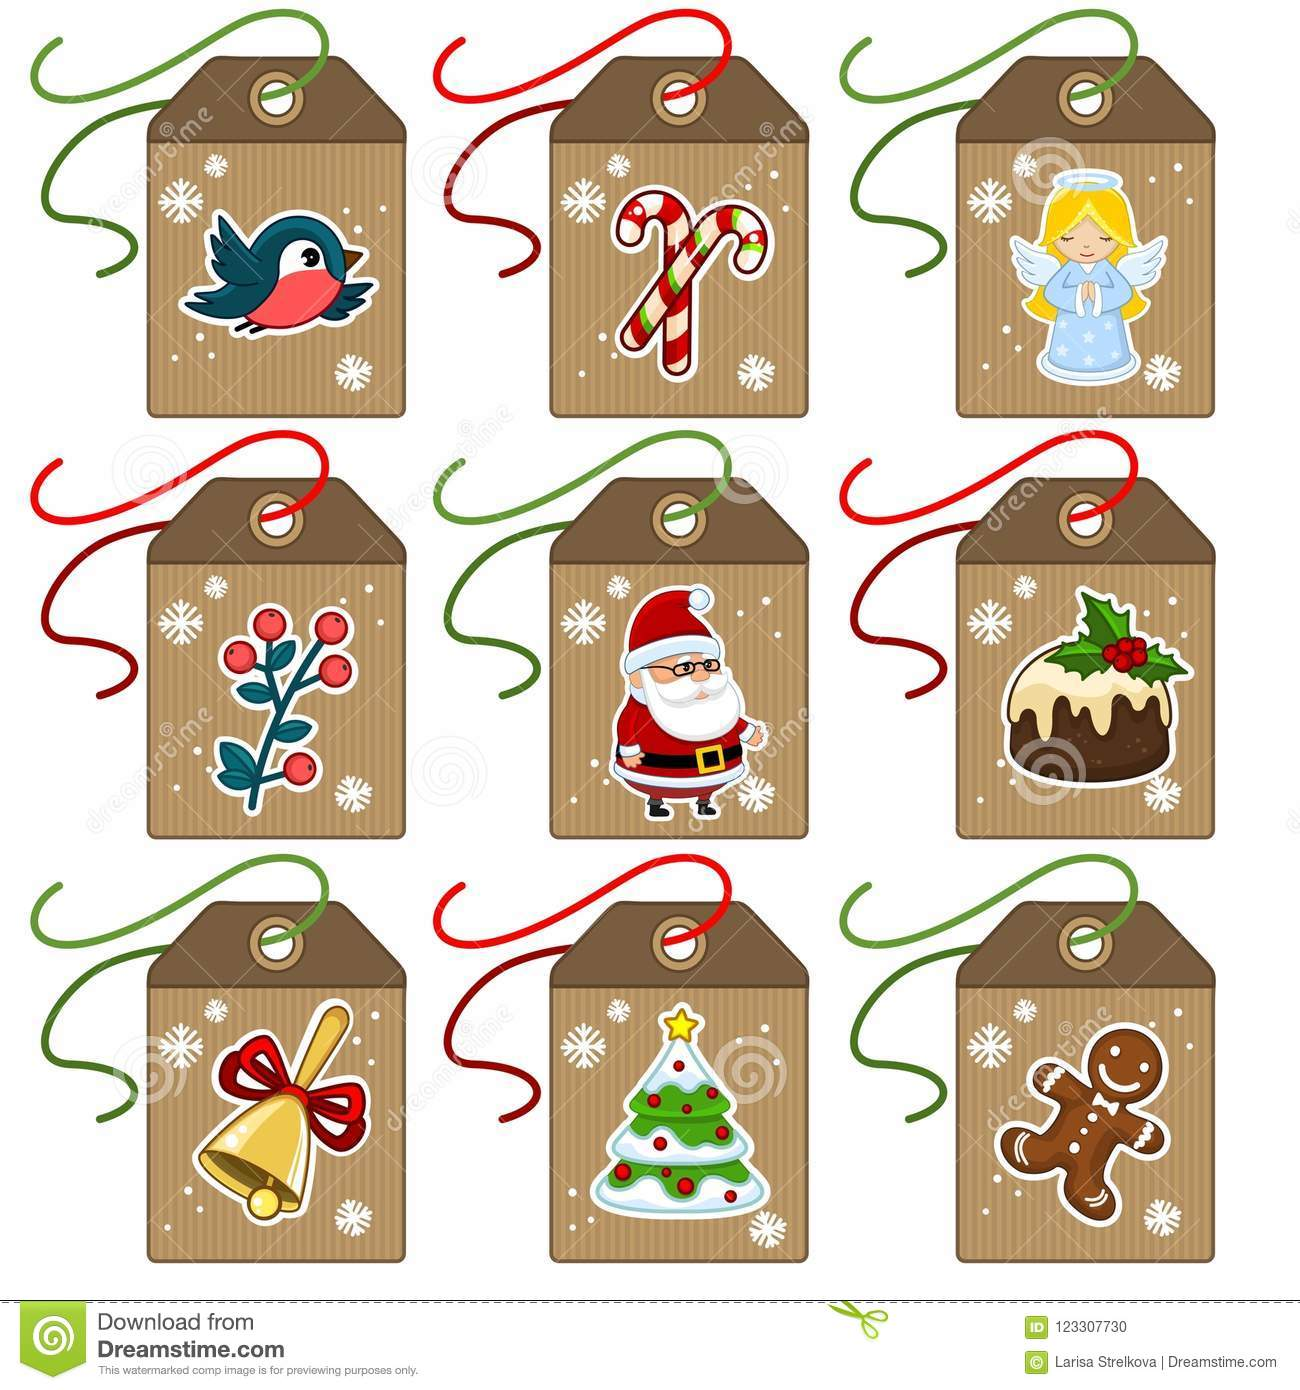 Vintage Christmas Illustrations.A Set Of Vintage Christmas Tags With New Year Objects Stock